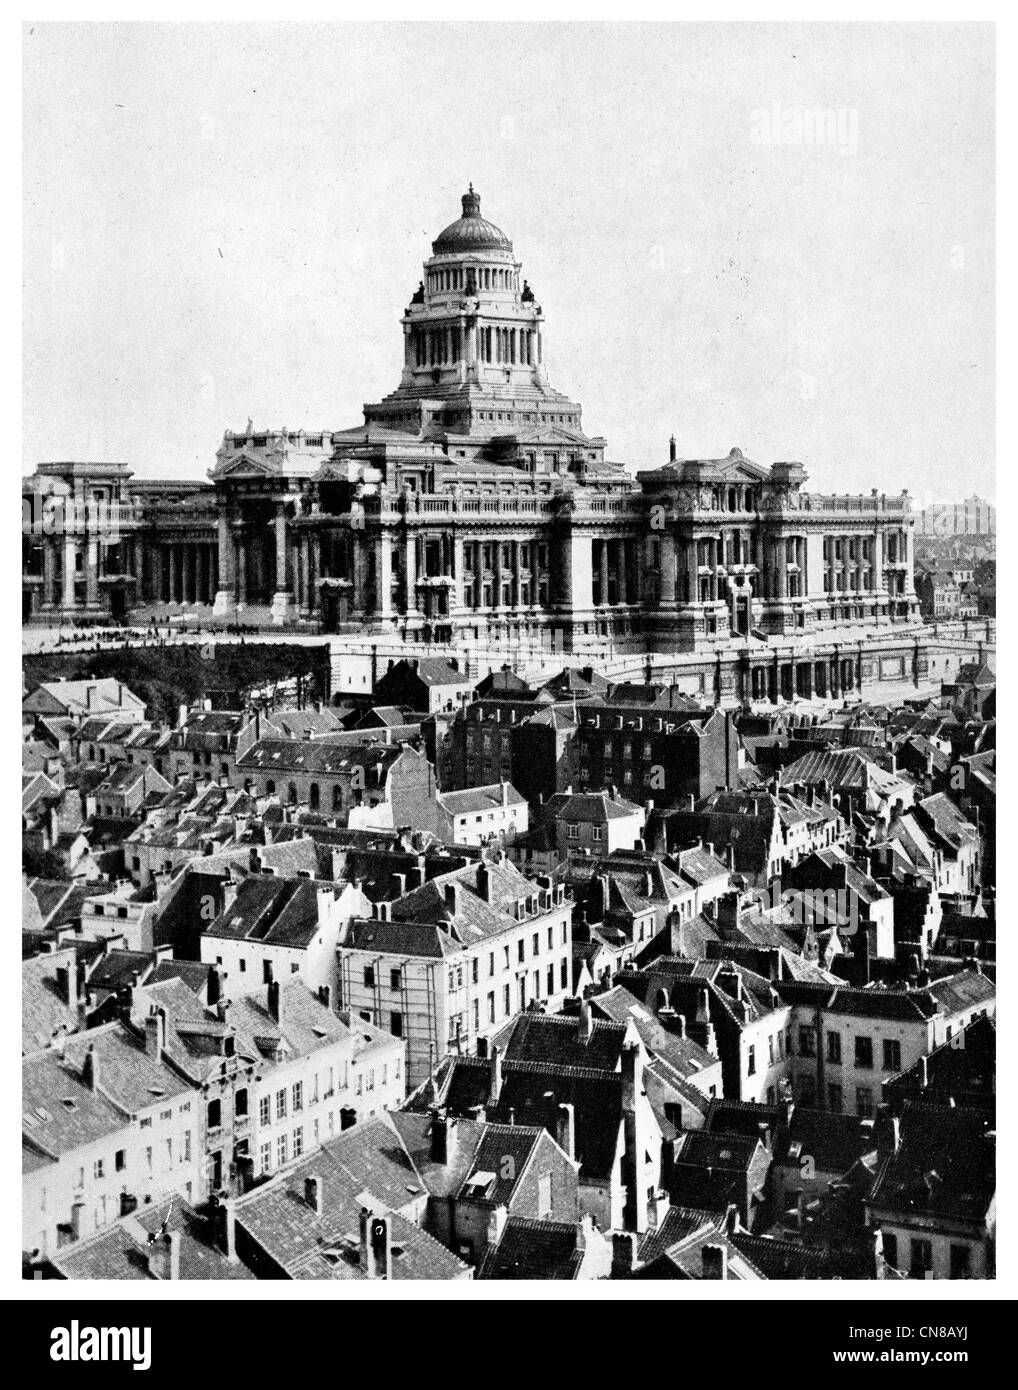 First published 1914  Brussels City Palace of Justice - Stock Image